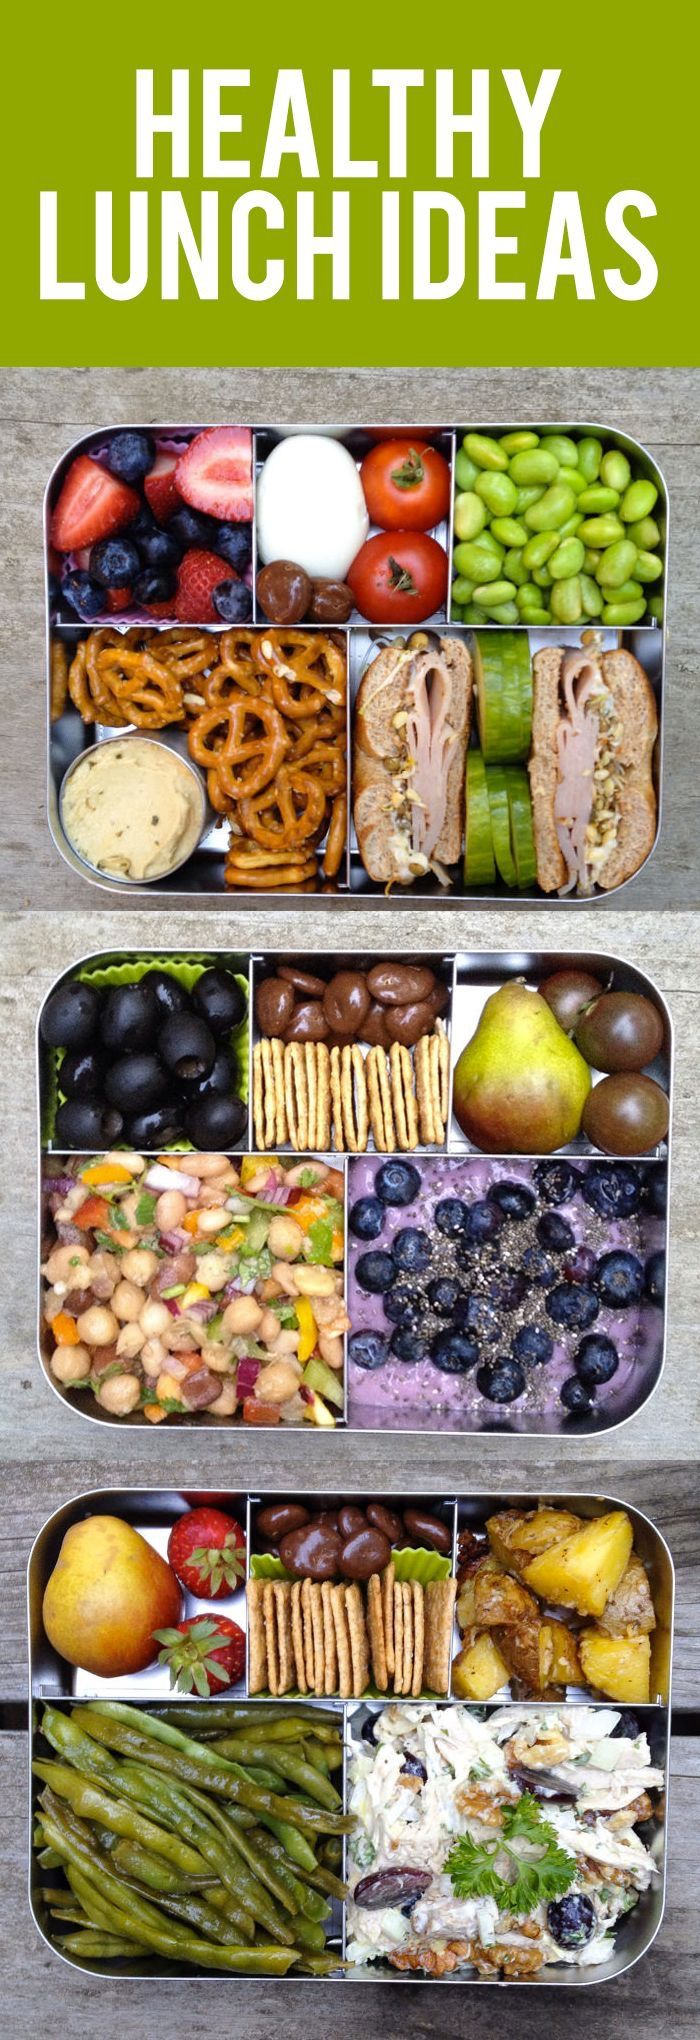 Healthy Lunch Ideas - From Back To Her Roots :: @backtoherroots :: | Glamour Shots Photography